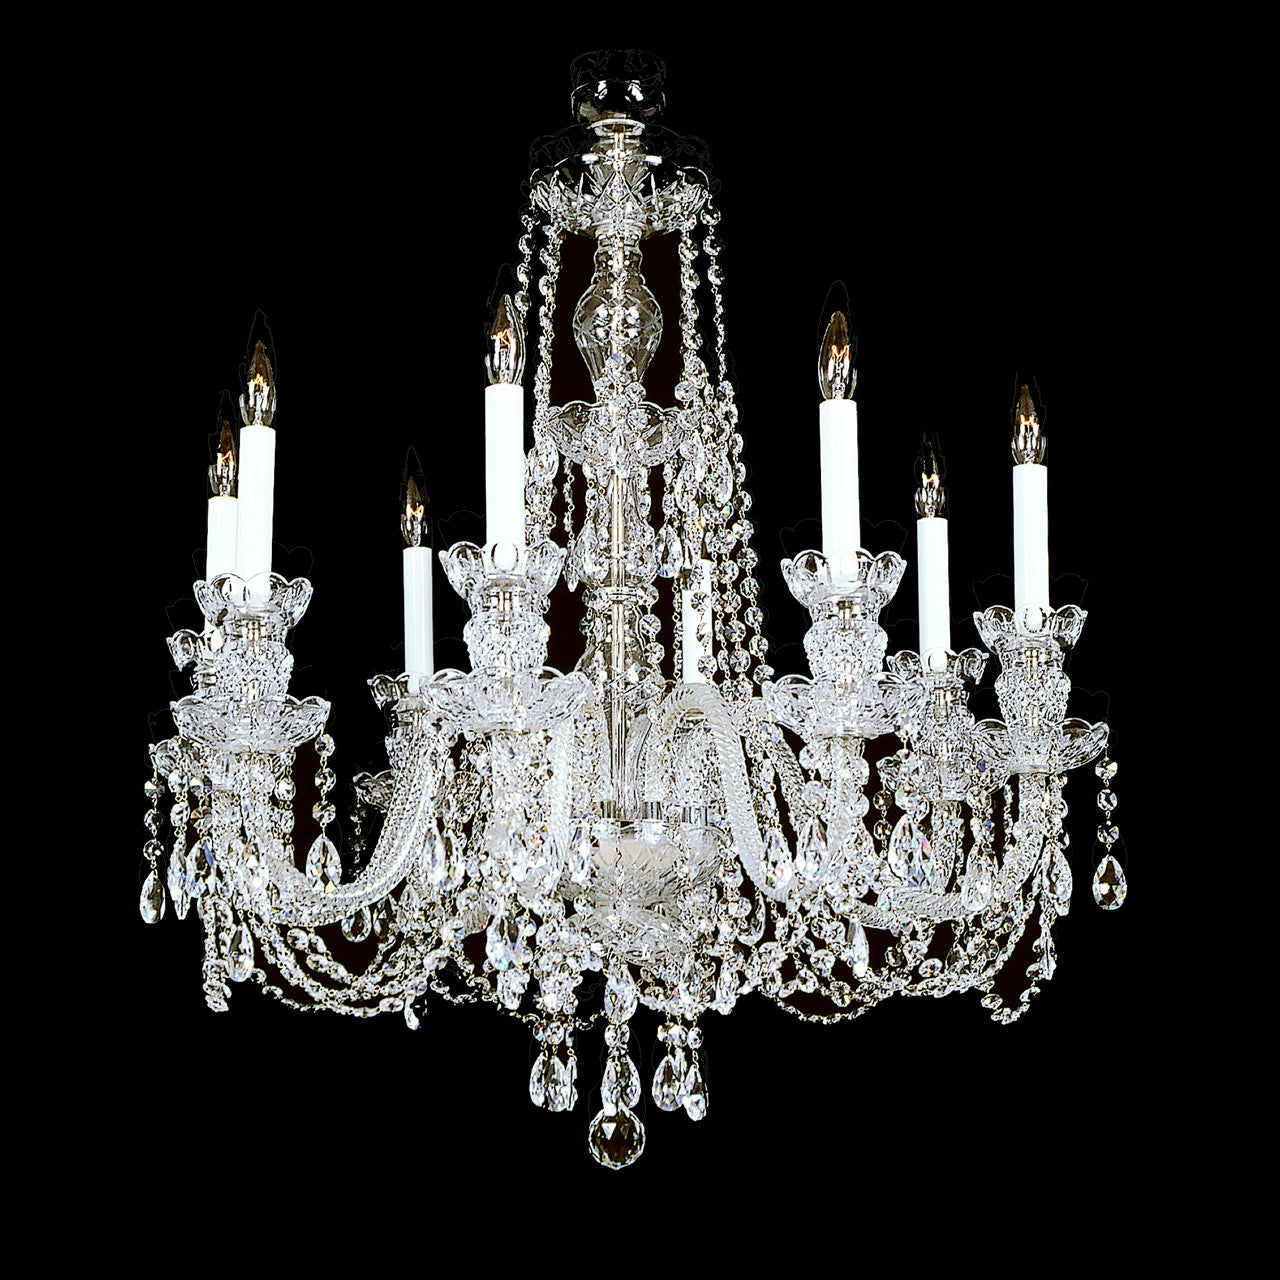 lights chandelier id antique lampen wall php schonbek list sconce empire replacement shoenbek chandeliers we swarovski co stud on studs service schonbe ceiling model earrings hongkong sunwe catalogue crystal ltd cleaning ebay crystals lighting customer